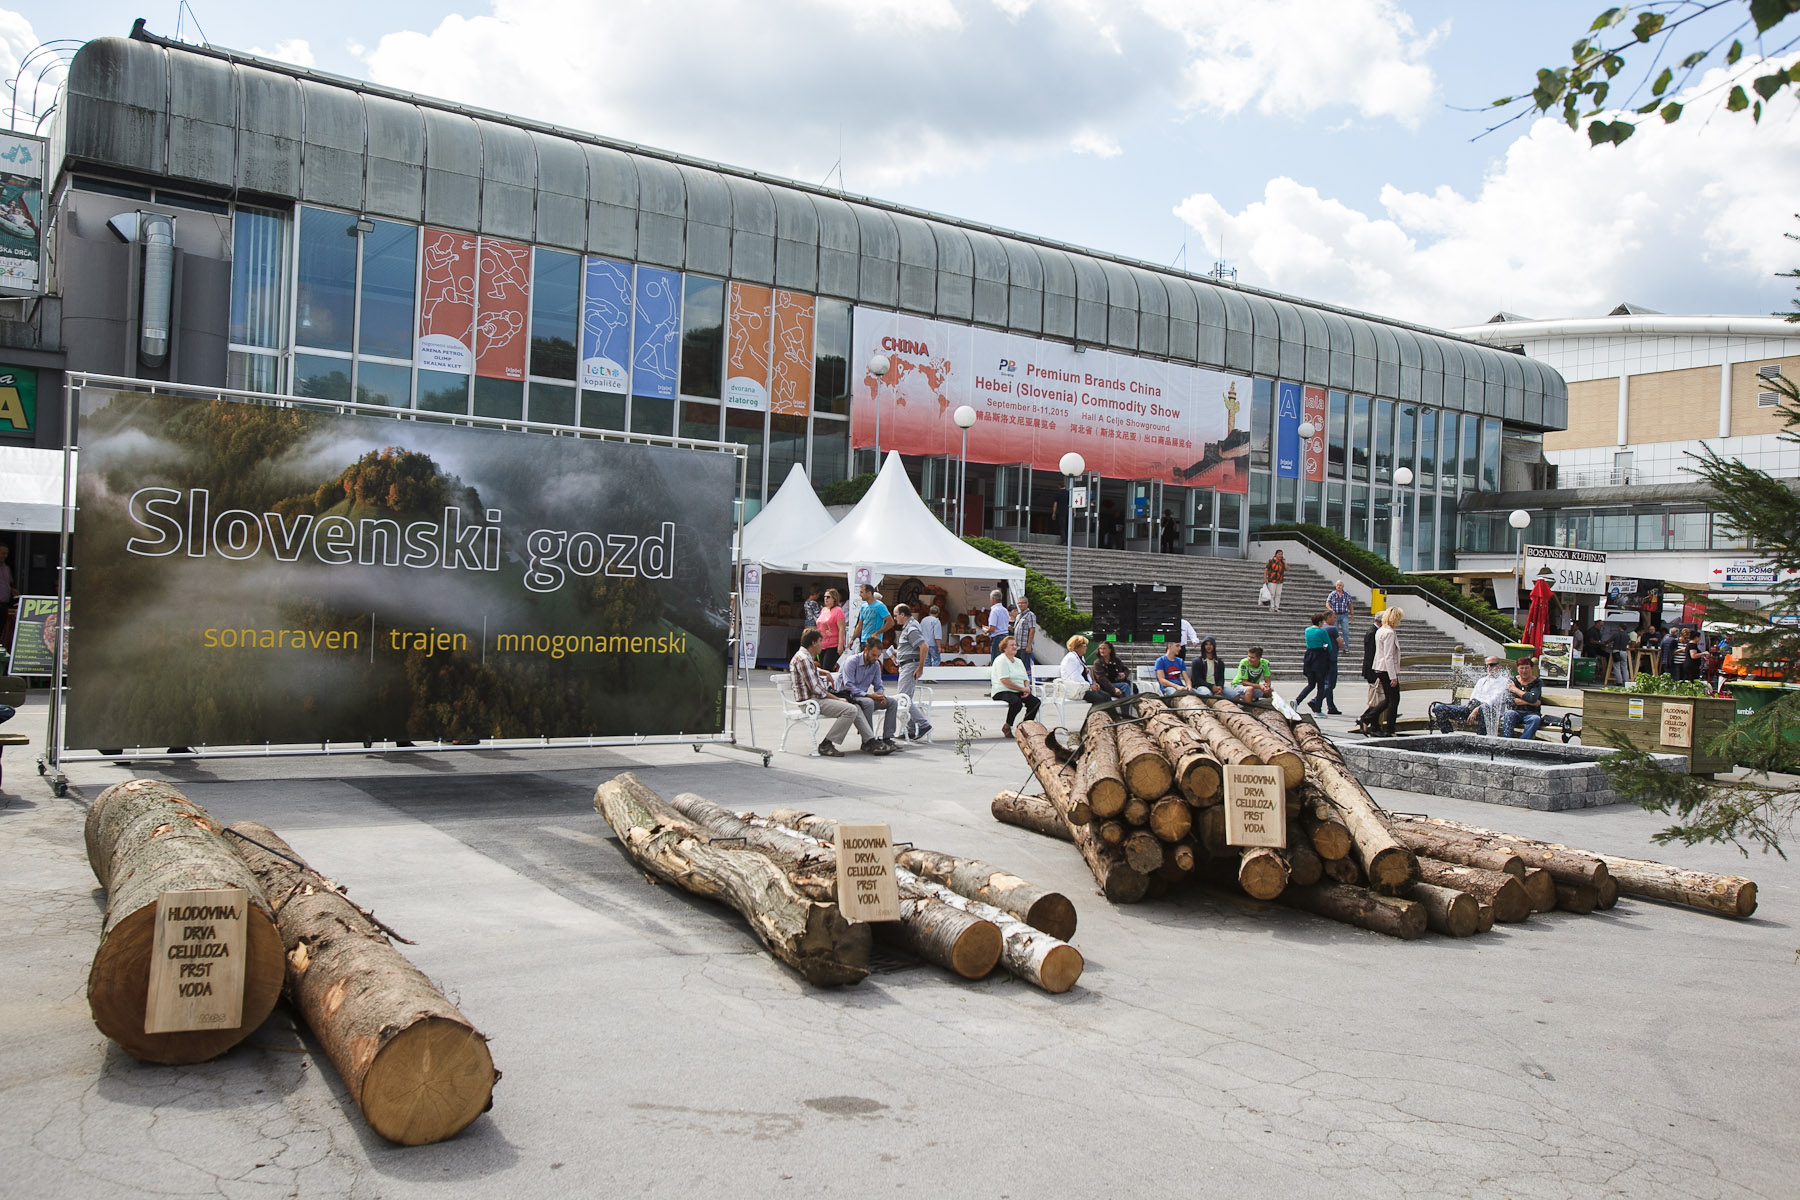 Slovenian wood industry presents itself at the 48th International Trade Fair in Celje, Slovenia, Sep. 8, 2015.